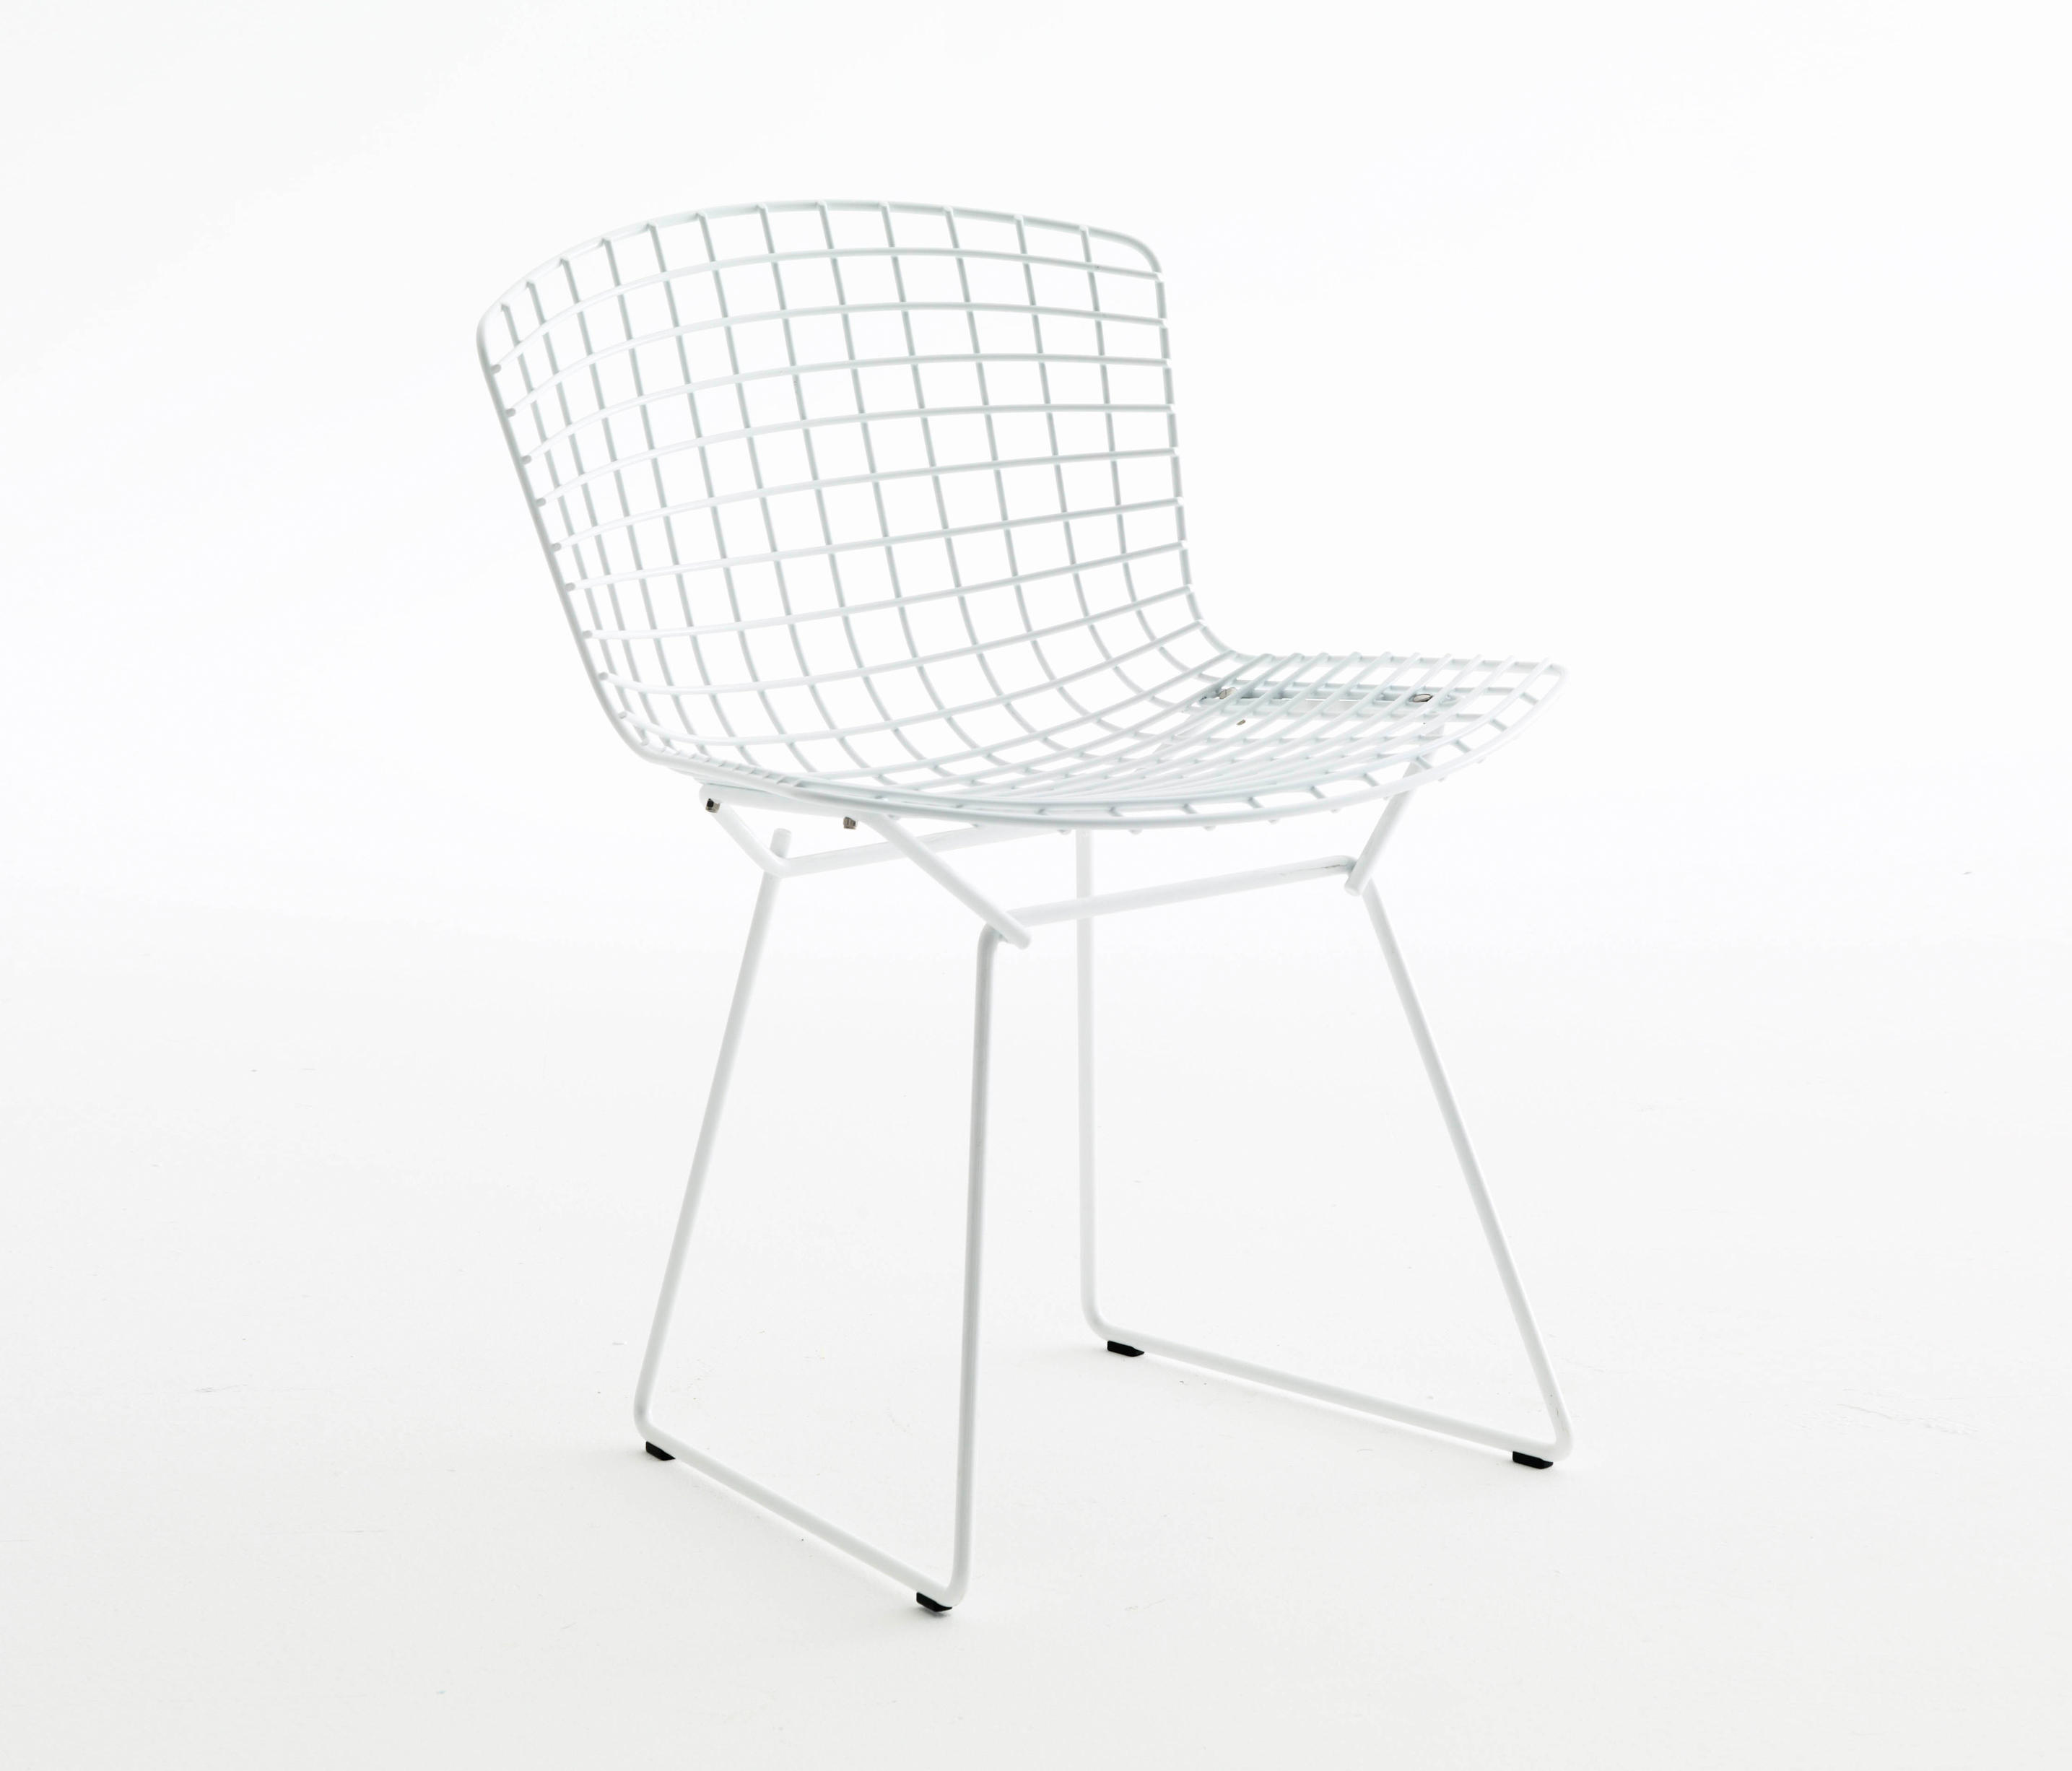 bertoia side chair chairs from knoll international architonic. Black Bedroom Furniture Sets. Home Design Ideas